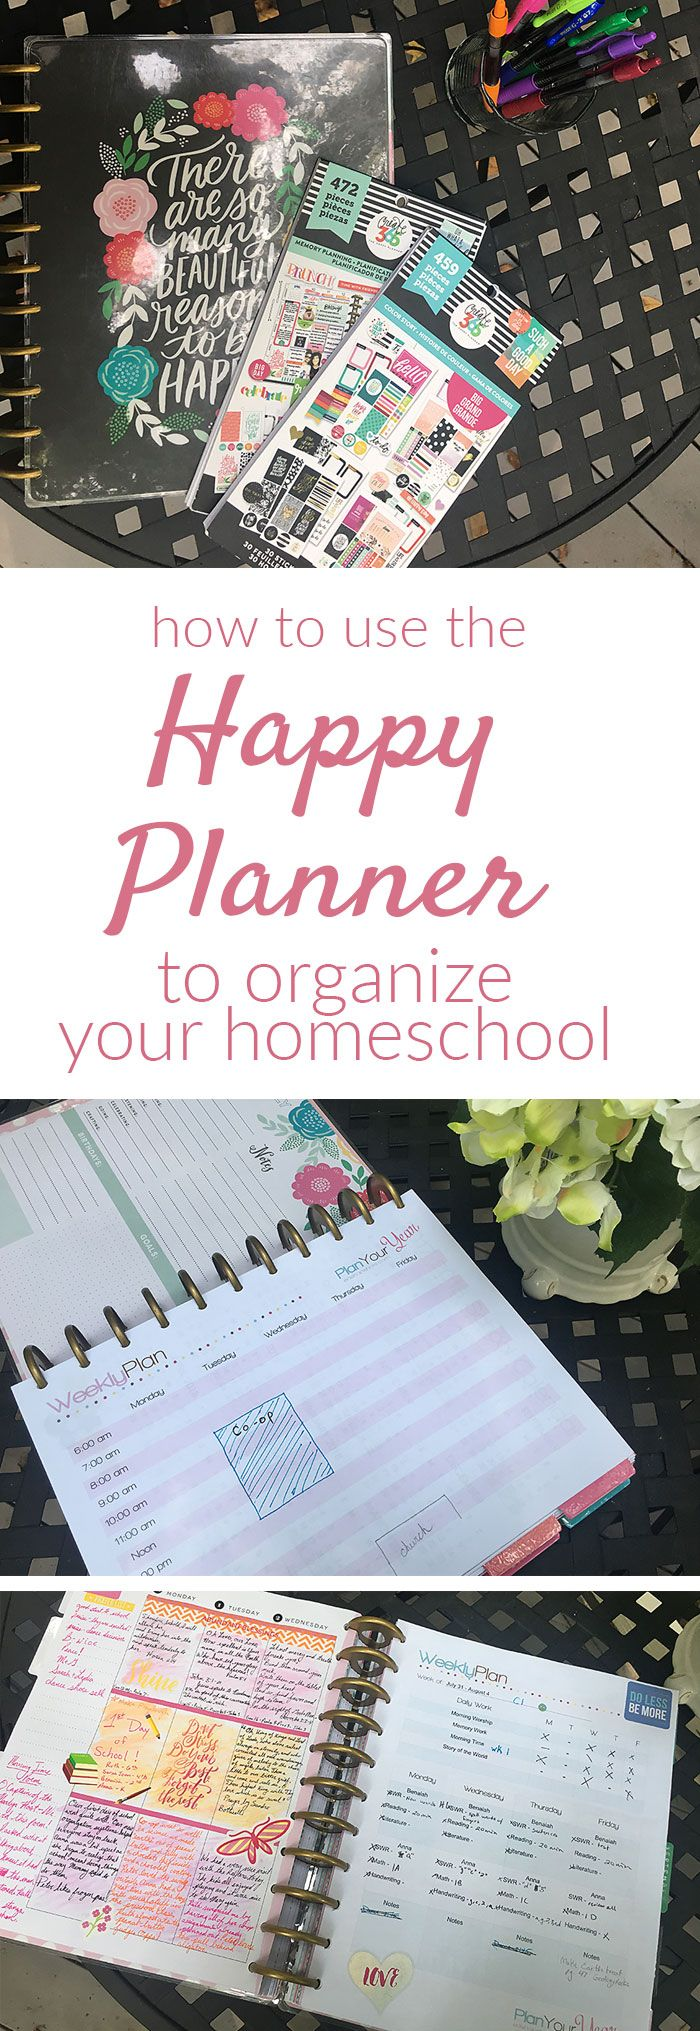 Need a flexible homeschool planner for your homeschool and your life? The Happy Planner can help you organize your homeschool and create a plan that will work for your unique family -- all in one place.